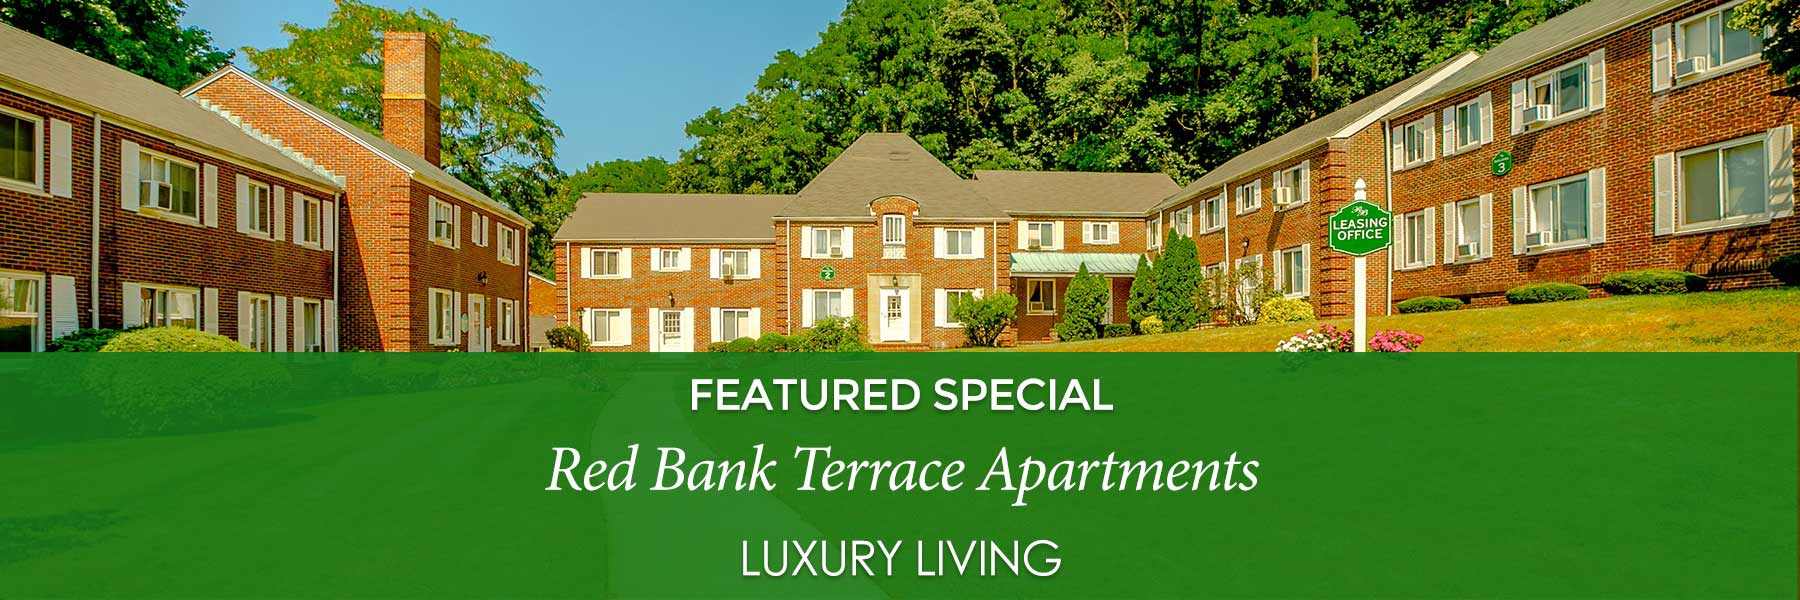 Red Bank Terrace Apartments specials